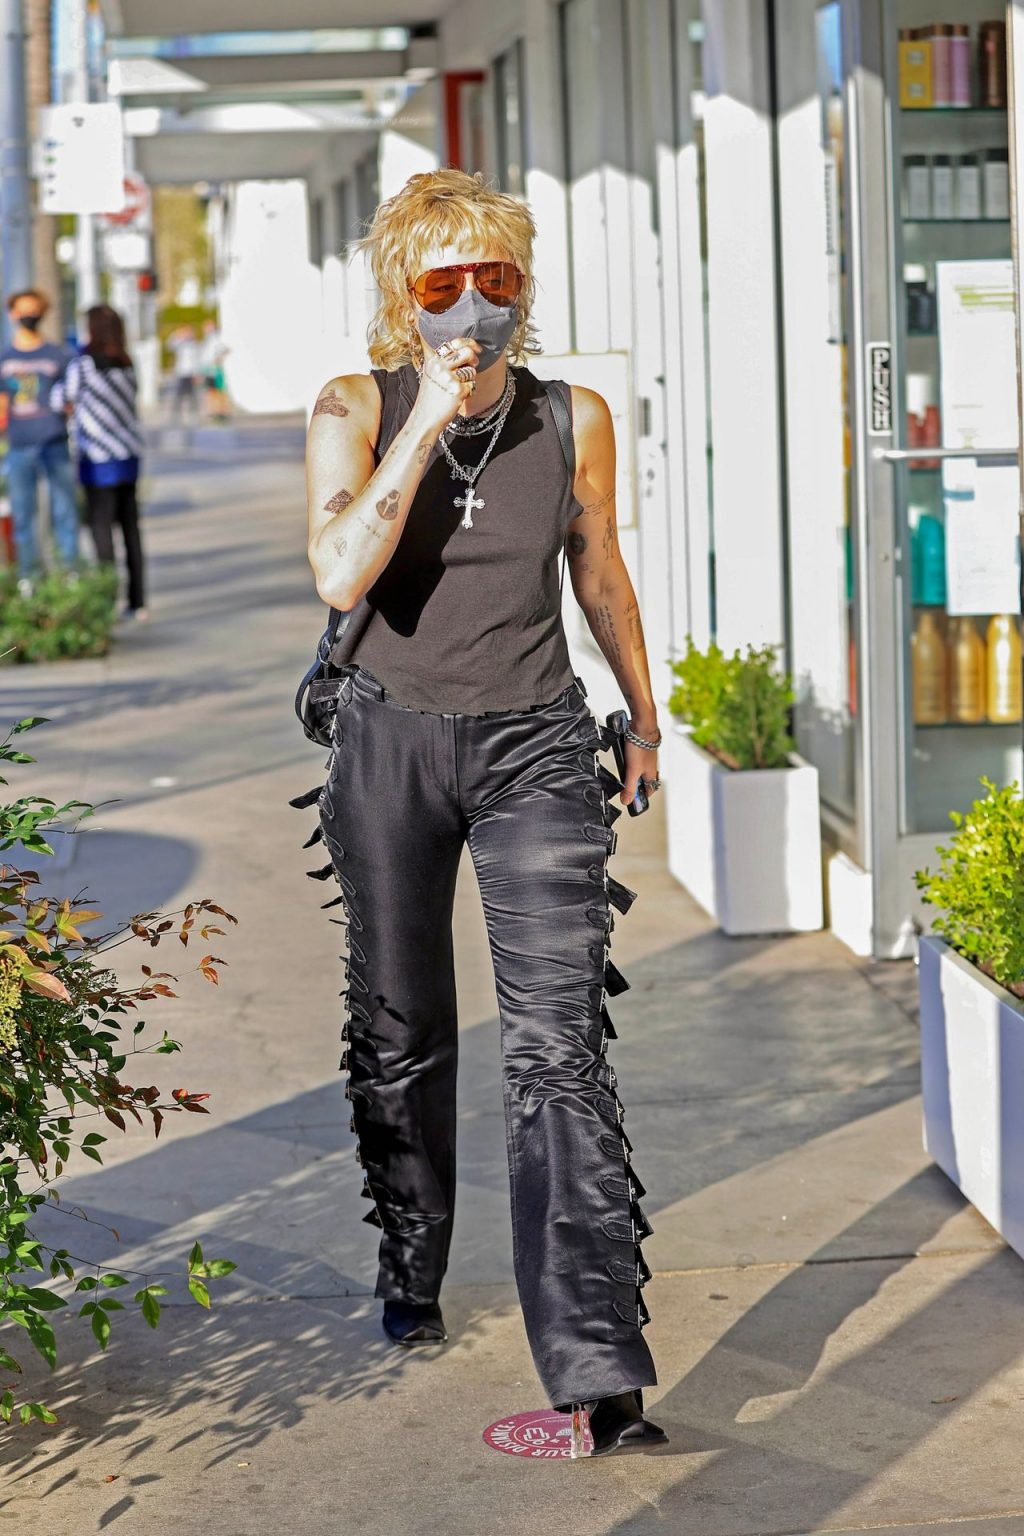 Braless Miley Cyrus Rocks a Stylish Outfit While out in Beverly Hills (11 Photos)